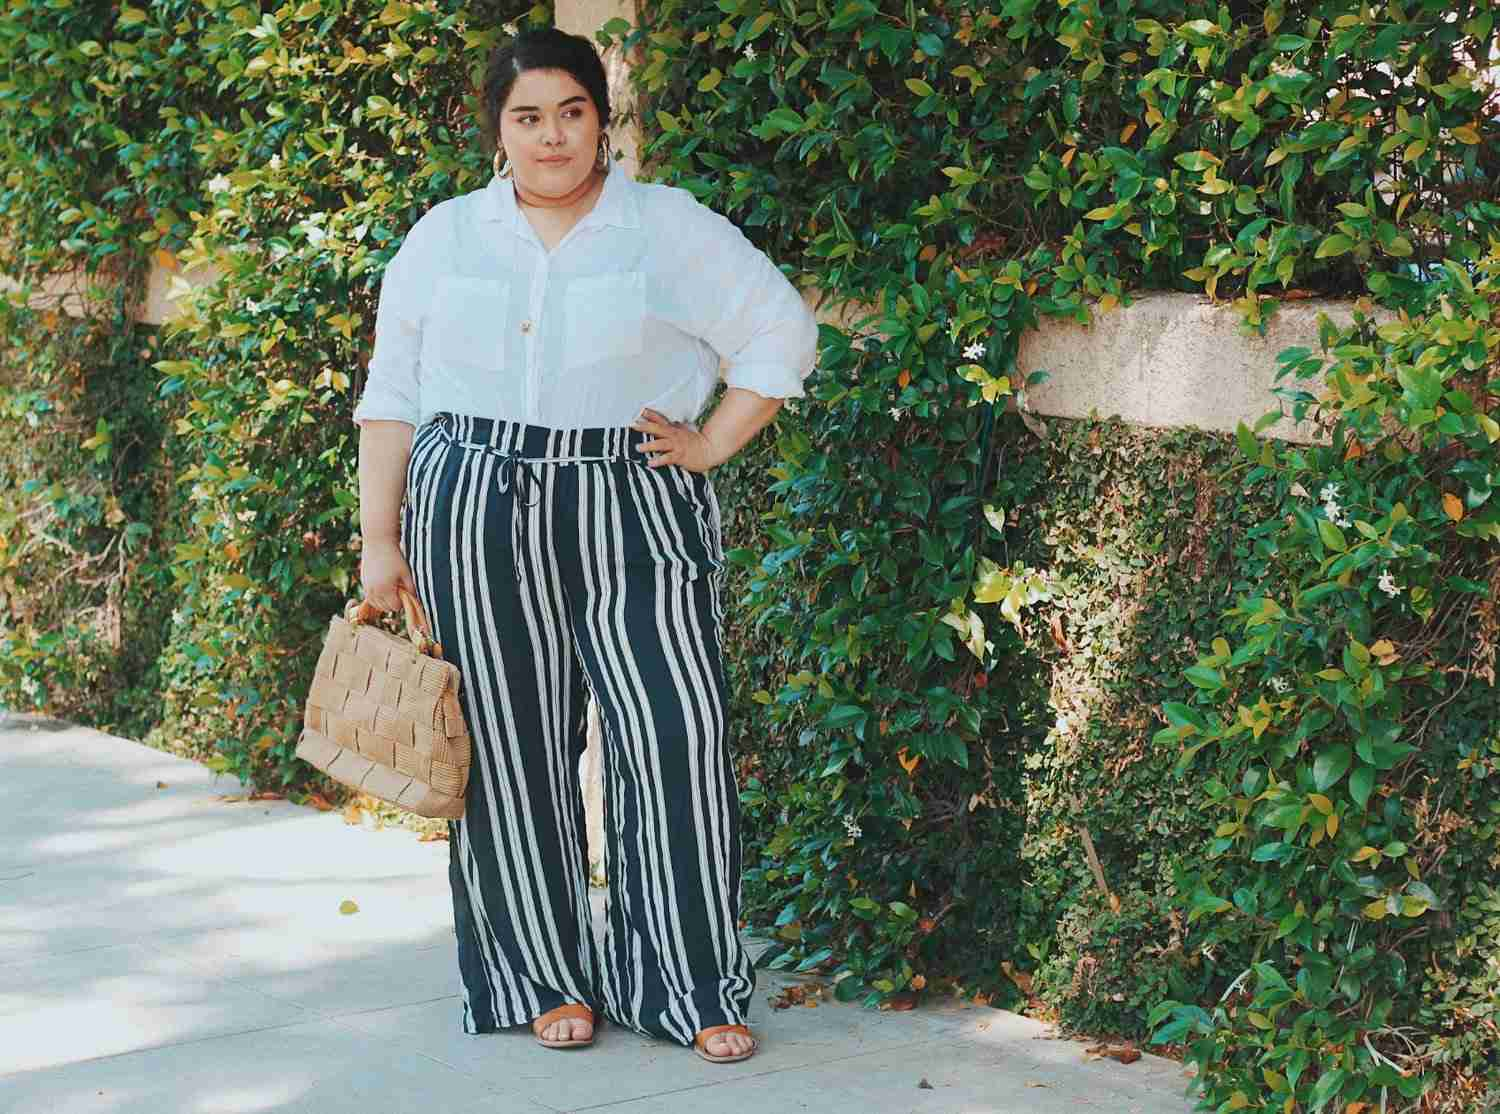 Woman in white shirt and striped pants for summer fashion